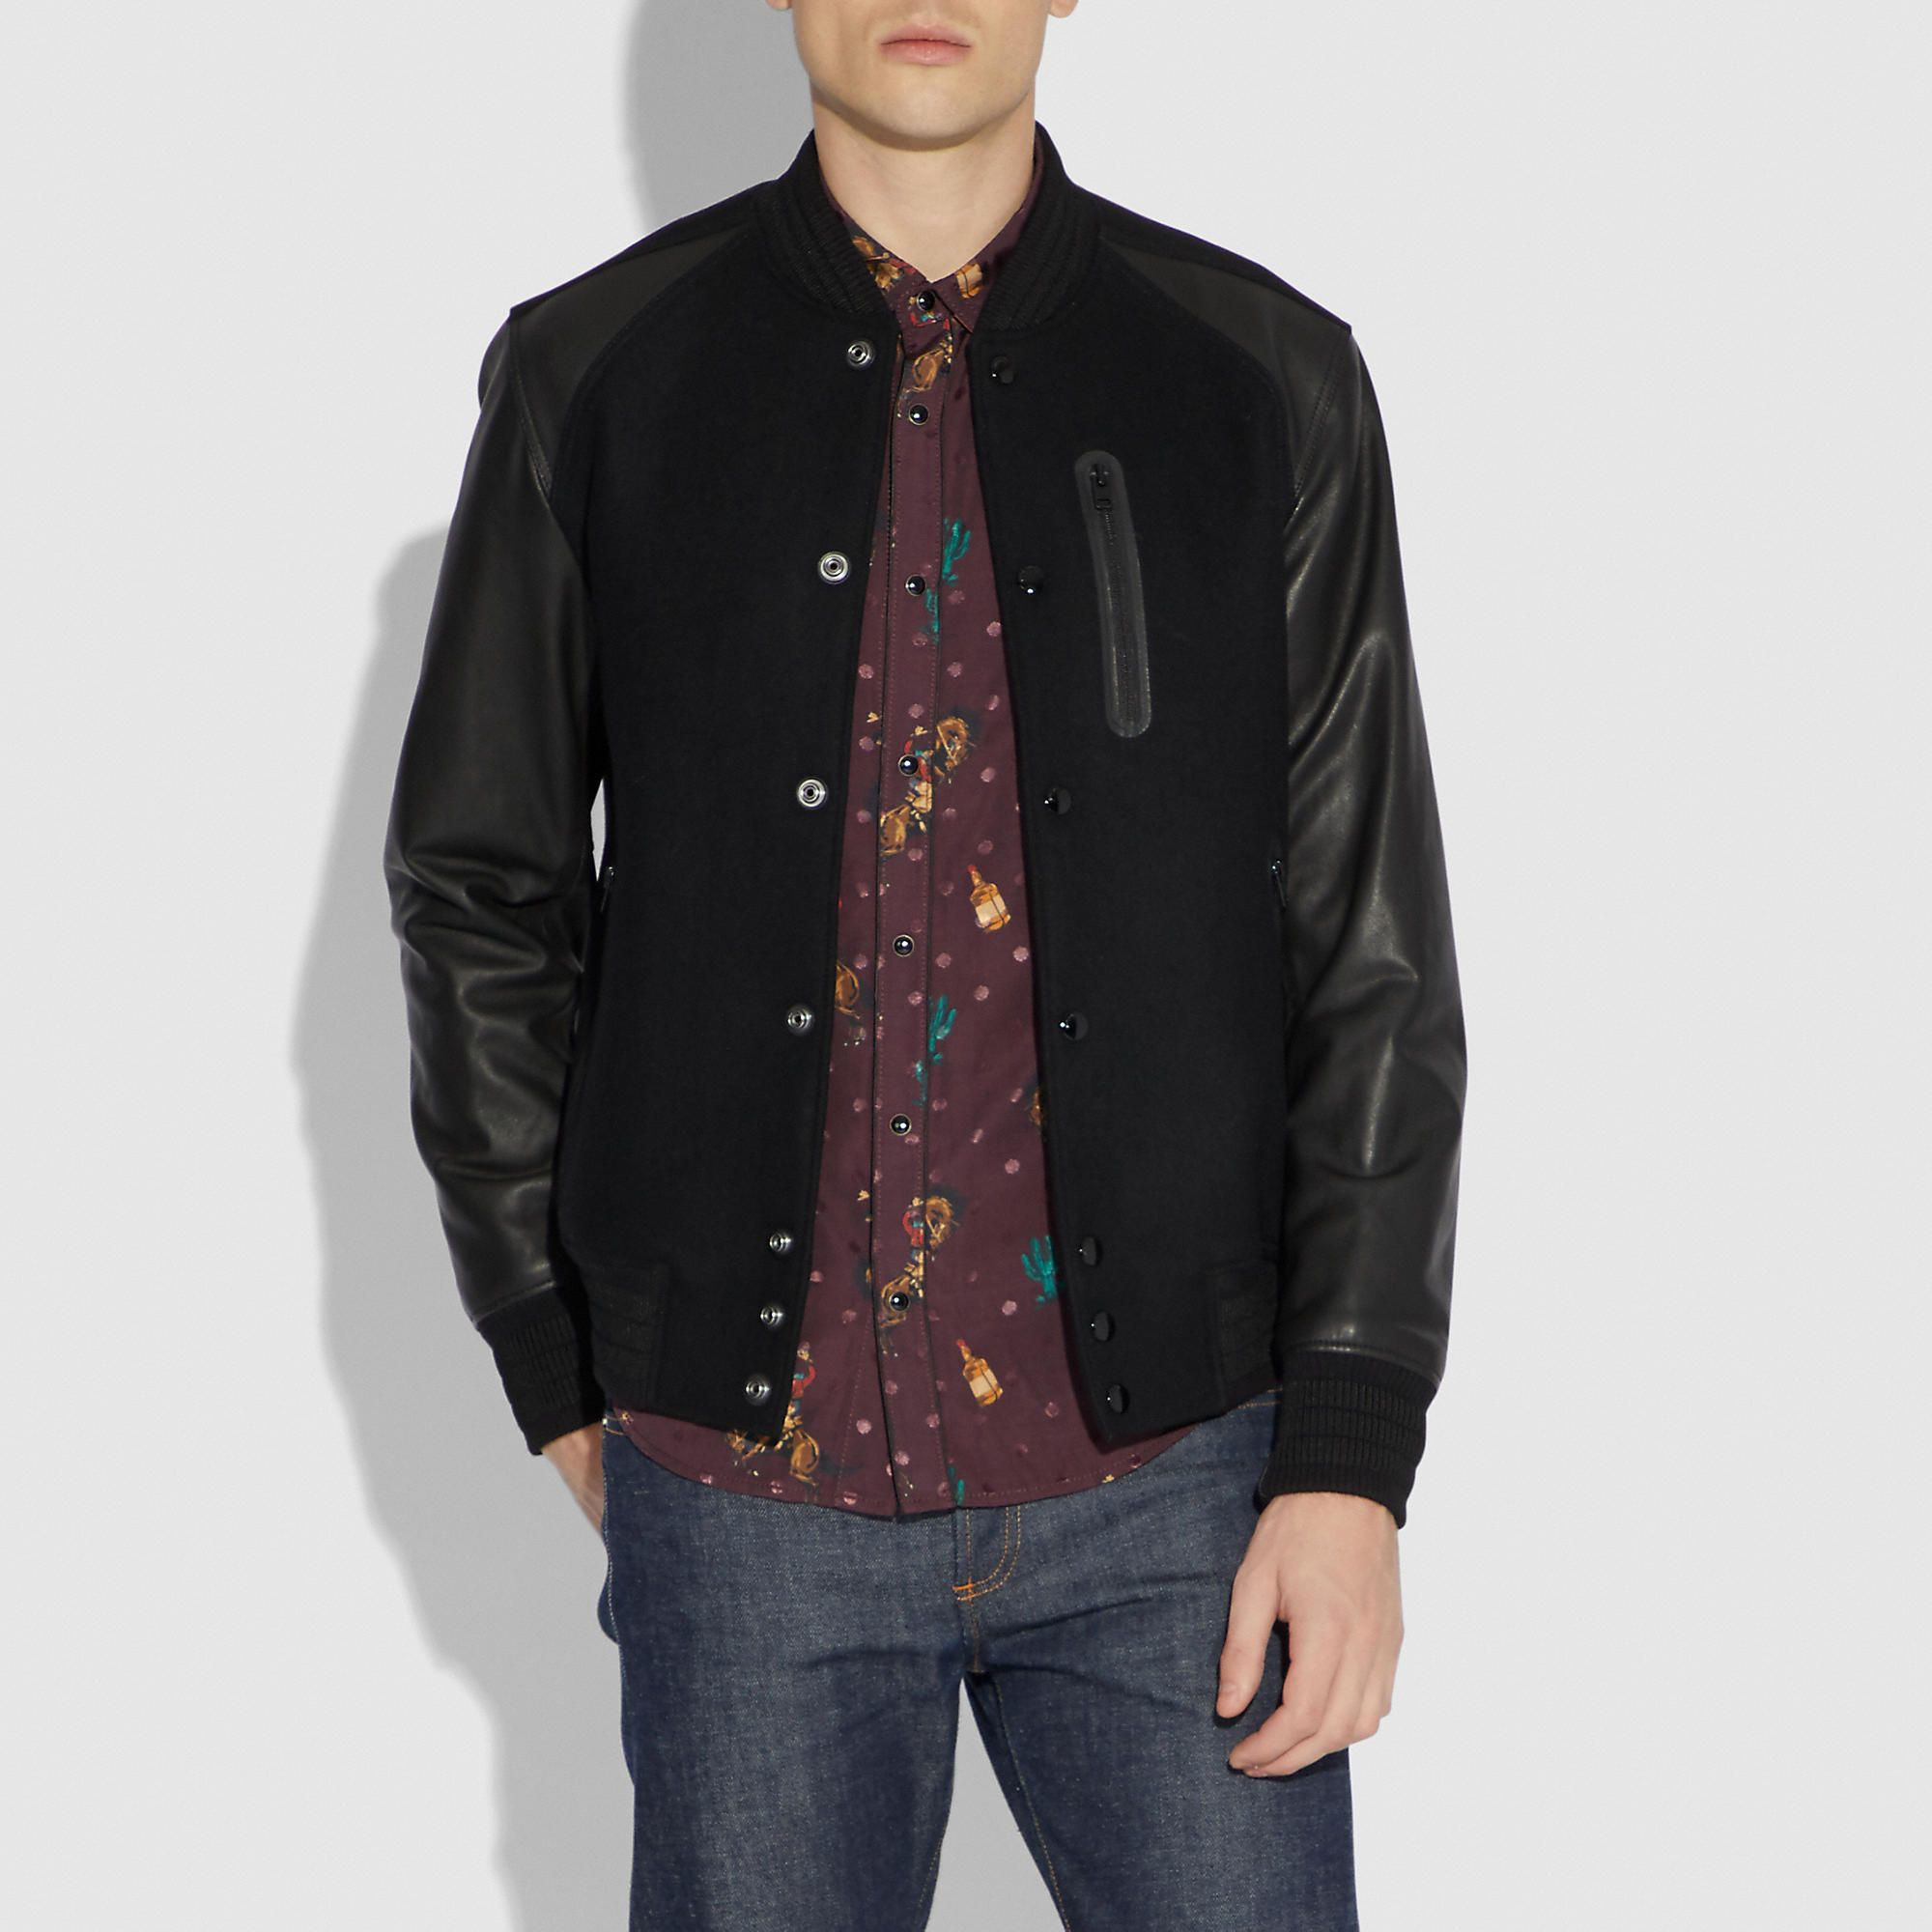 COACH Men's Rexy Varsity Jacket Jackets, Bomber jacket